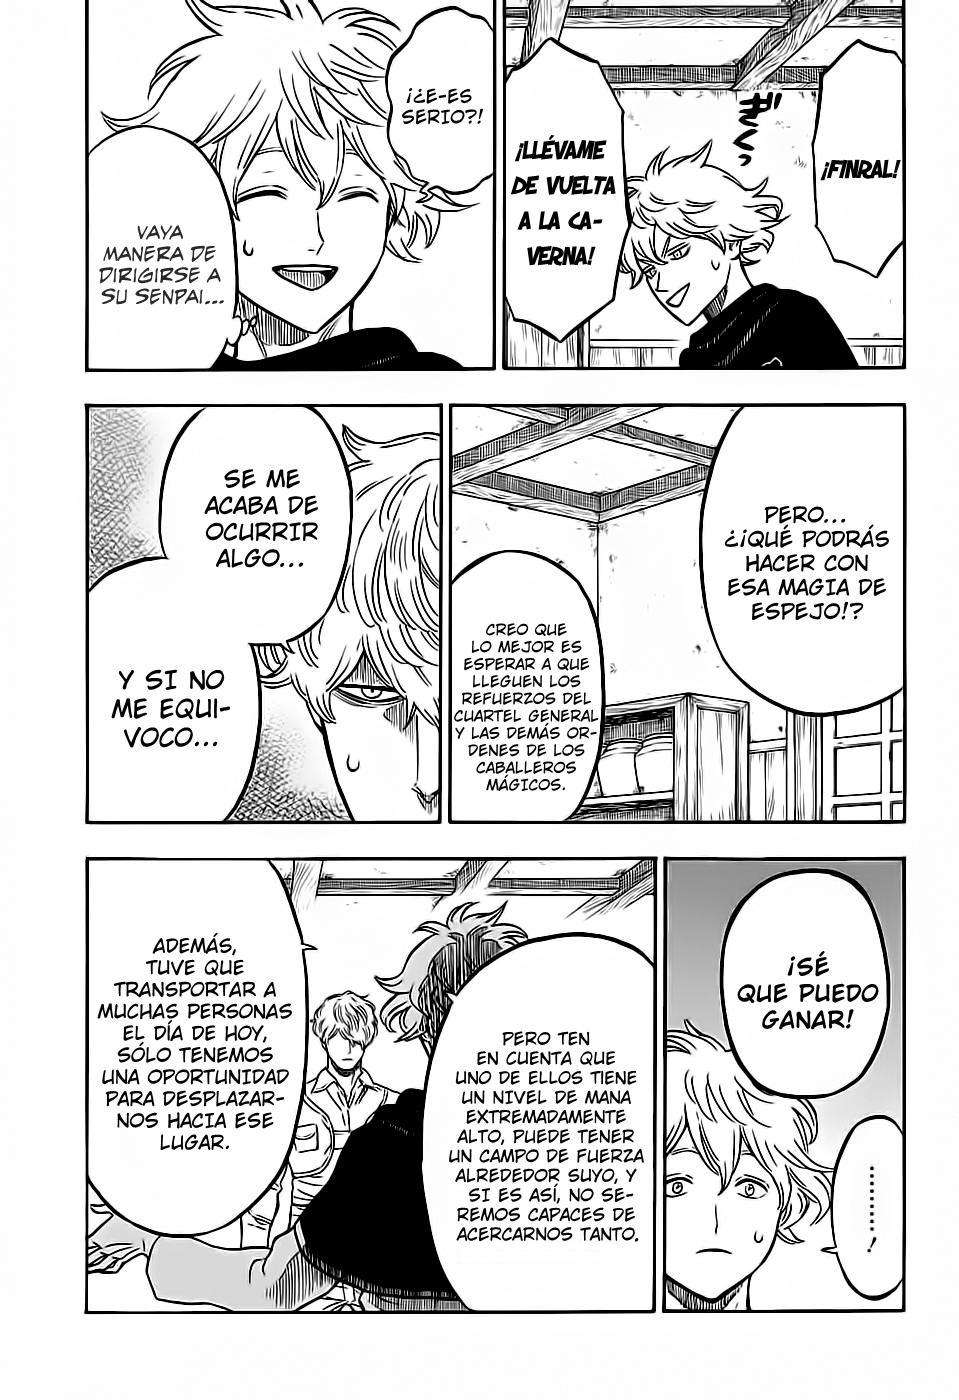 http://c5.ninemanga.com/es_manga/35/3811/446294/de6a129877016c0a10440f46f5d80777.jpg Page 14